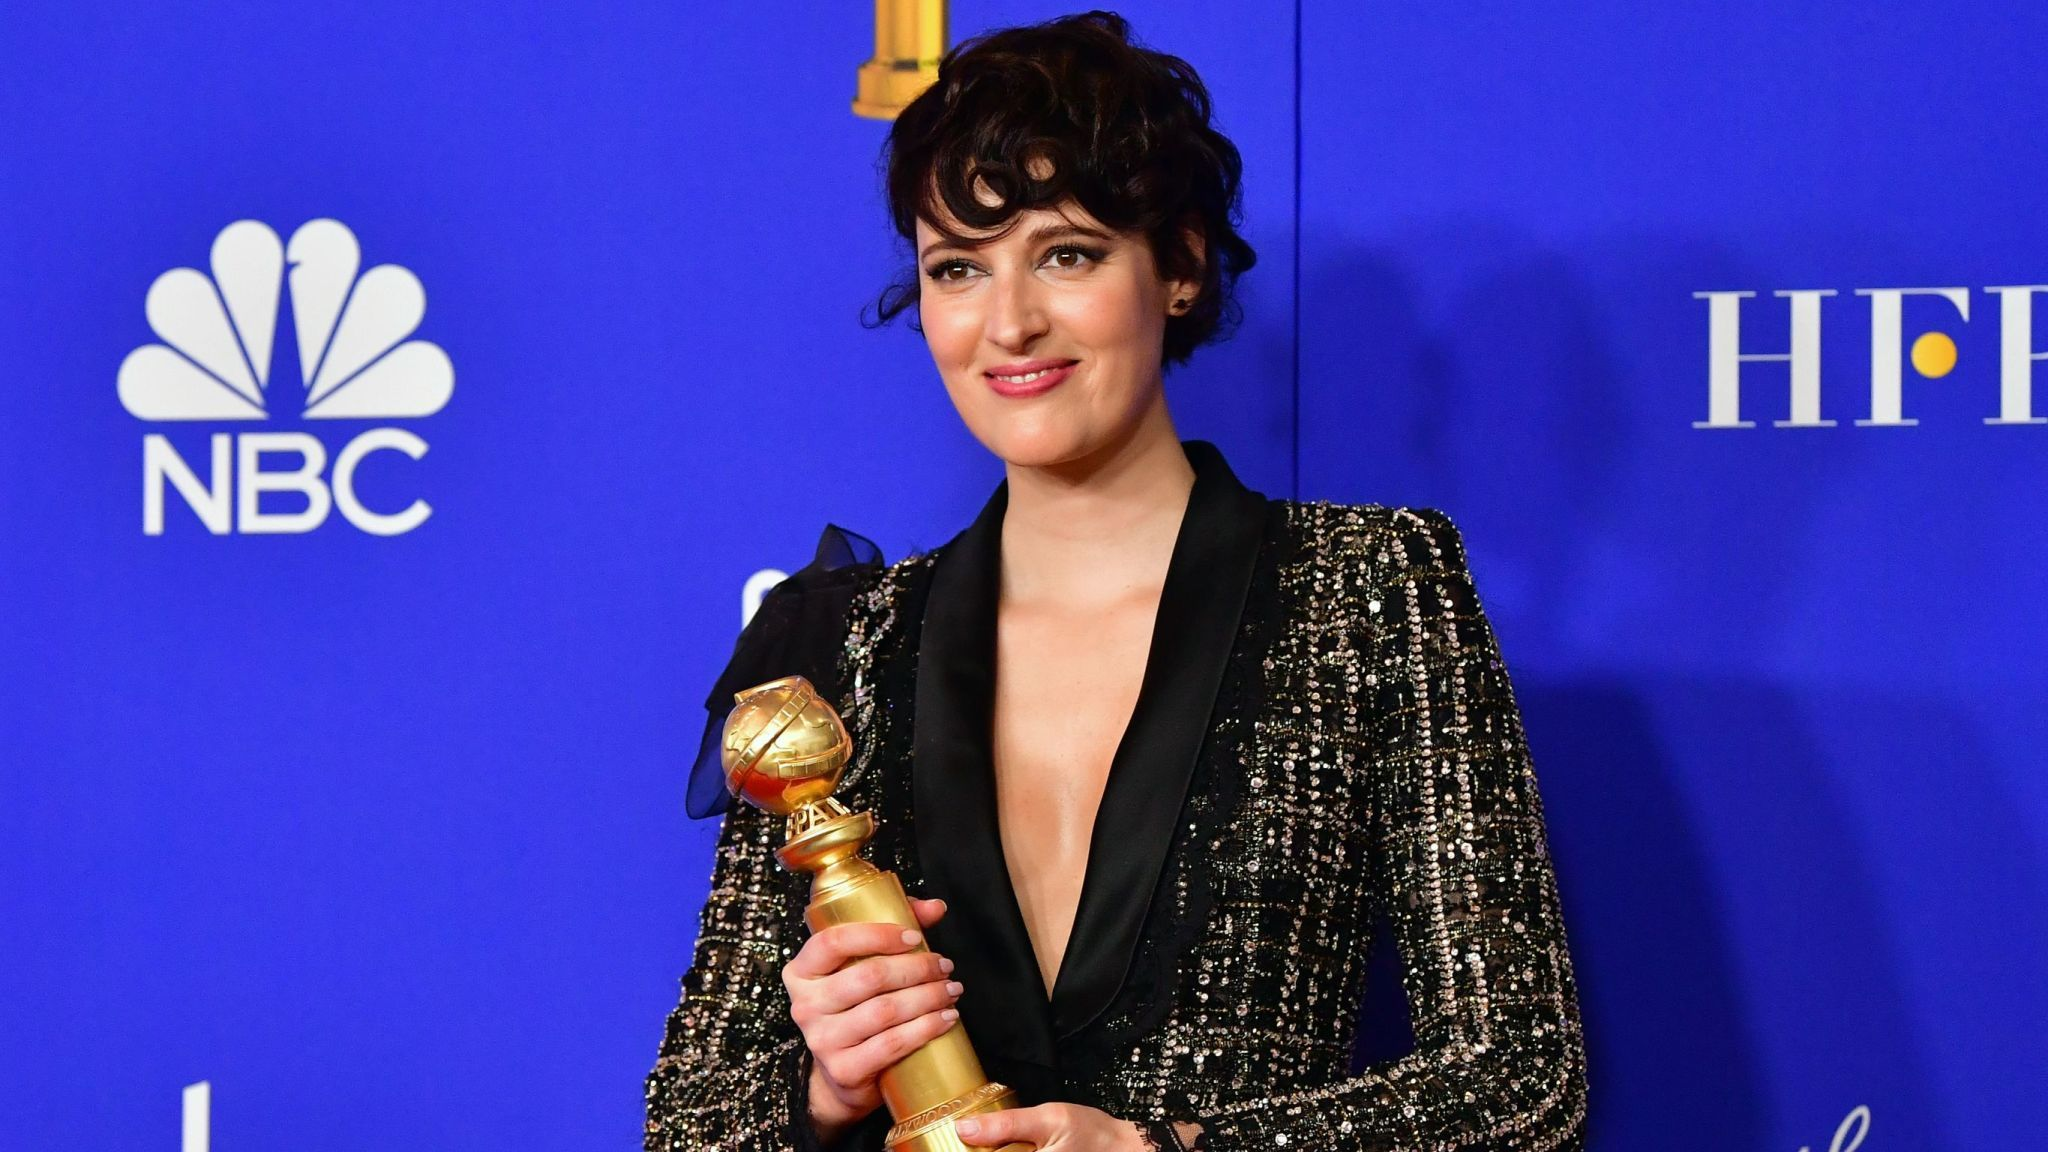 Golden Globes winner Phoebe Waller-Bridge on stage